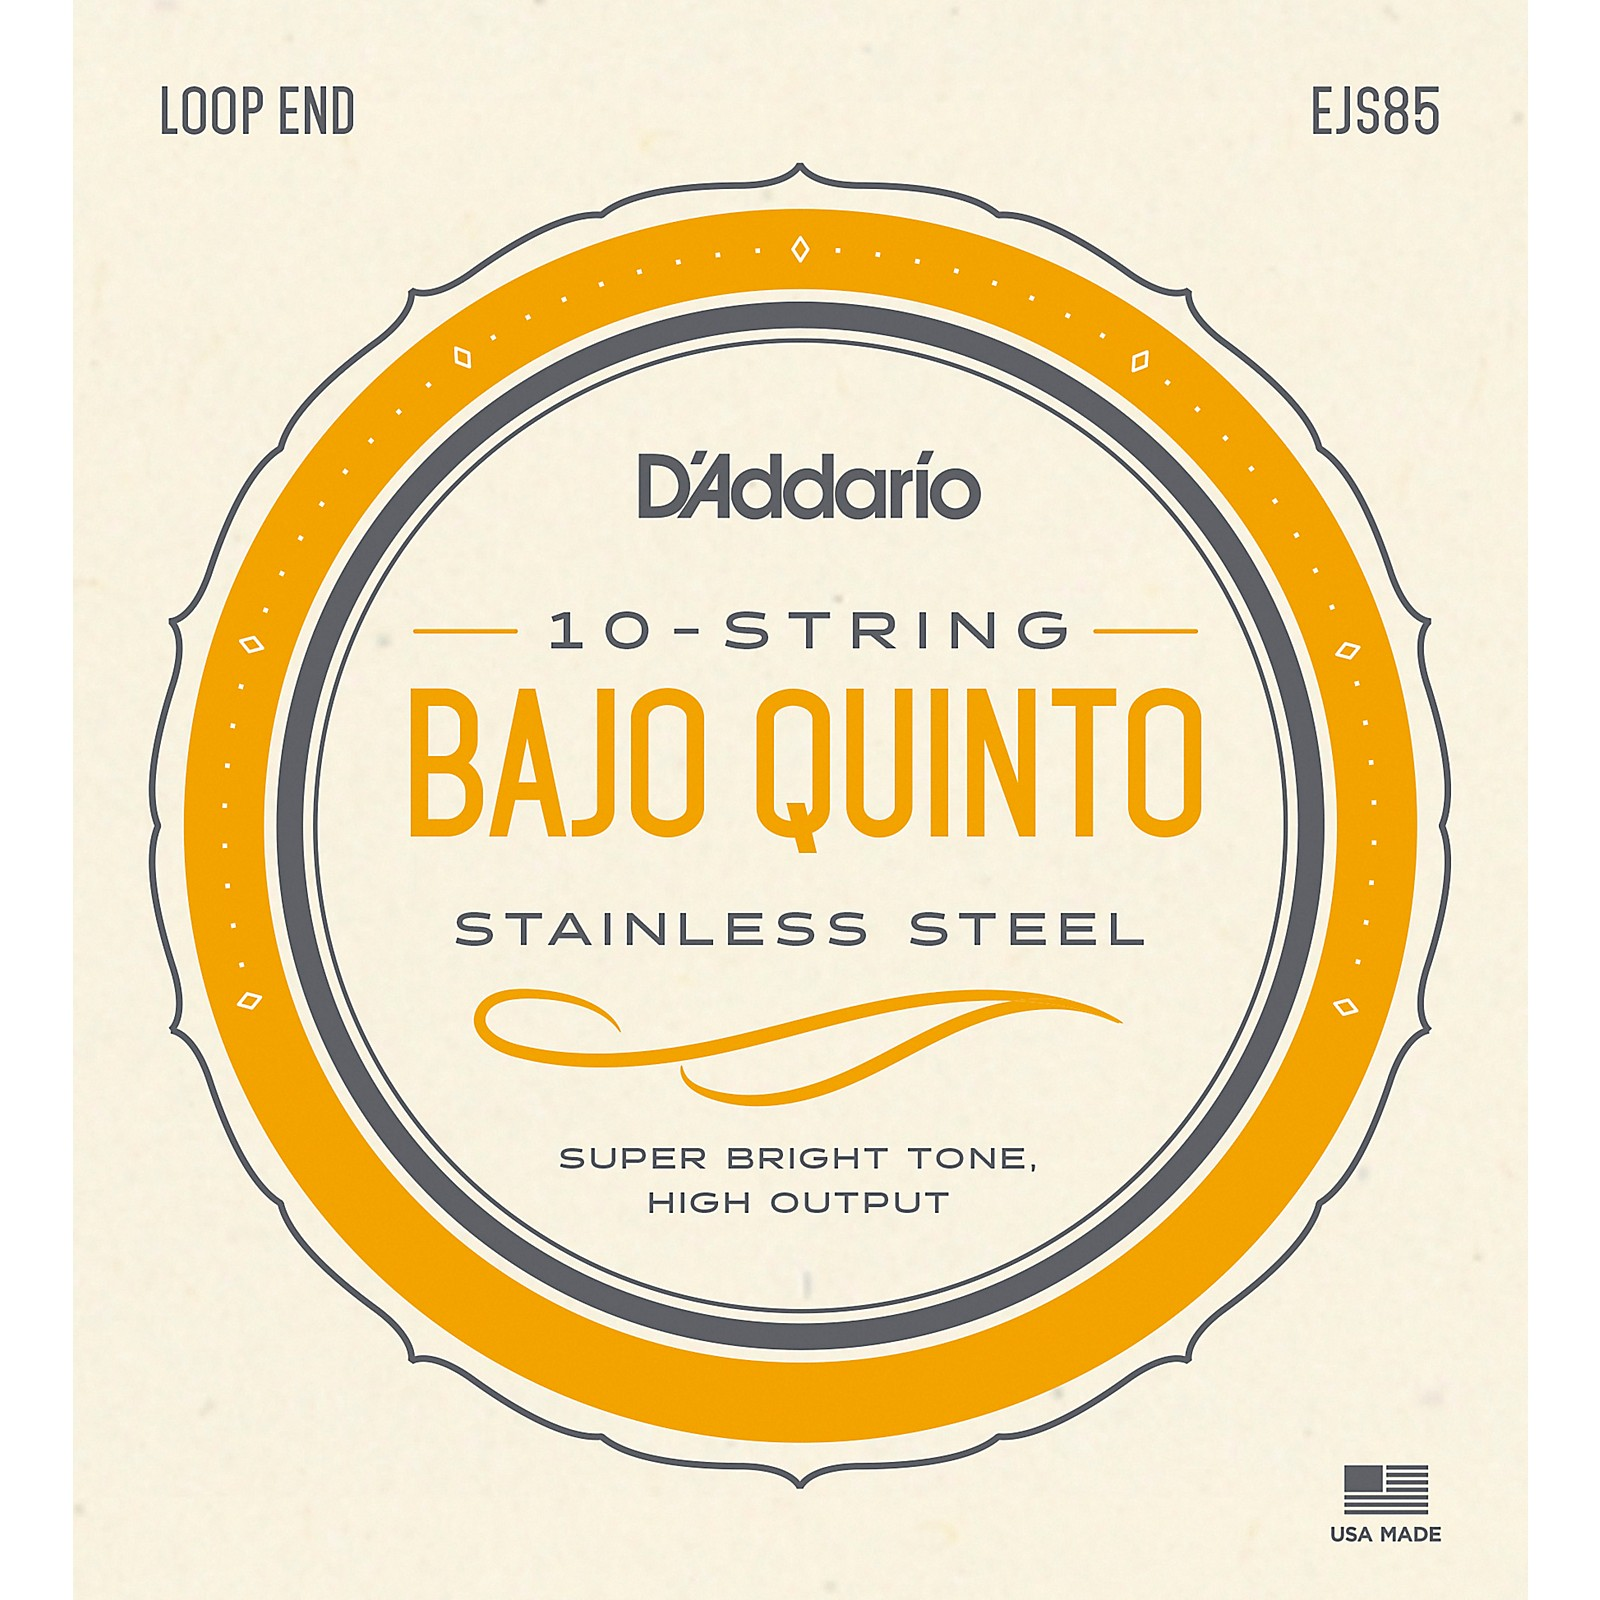 D'Addario Stainless Steel Bajo Quinto String Set